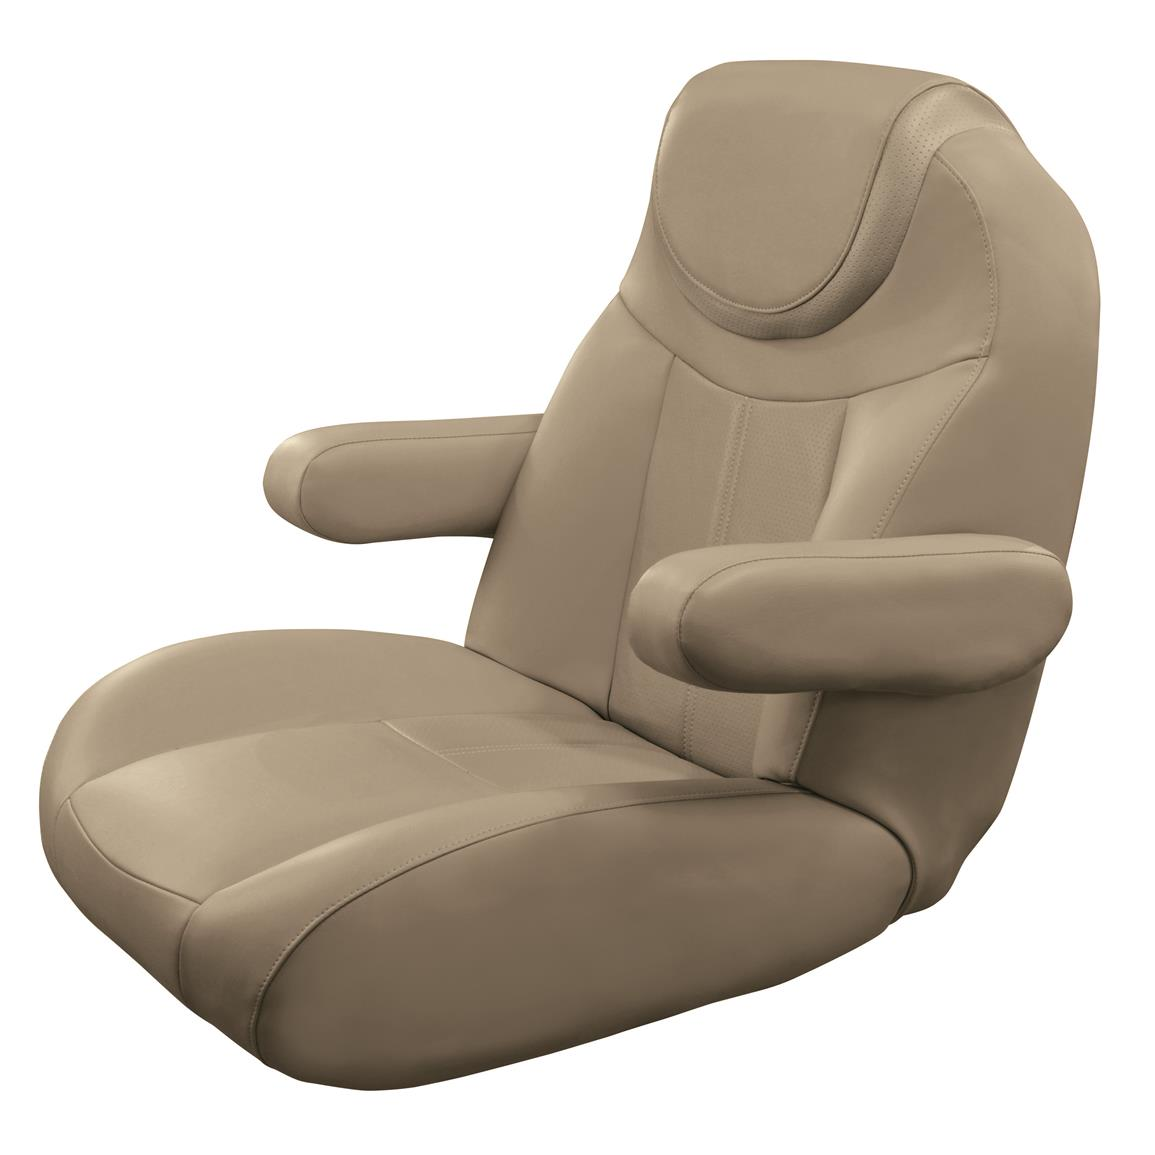 Wise Tellico Mid Back Recliner Pontoon Bucket Seat, Color F - Mocha Java